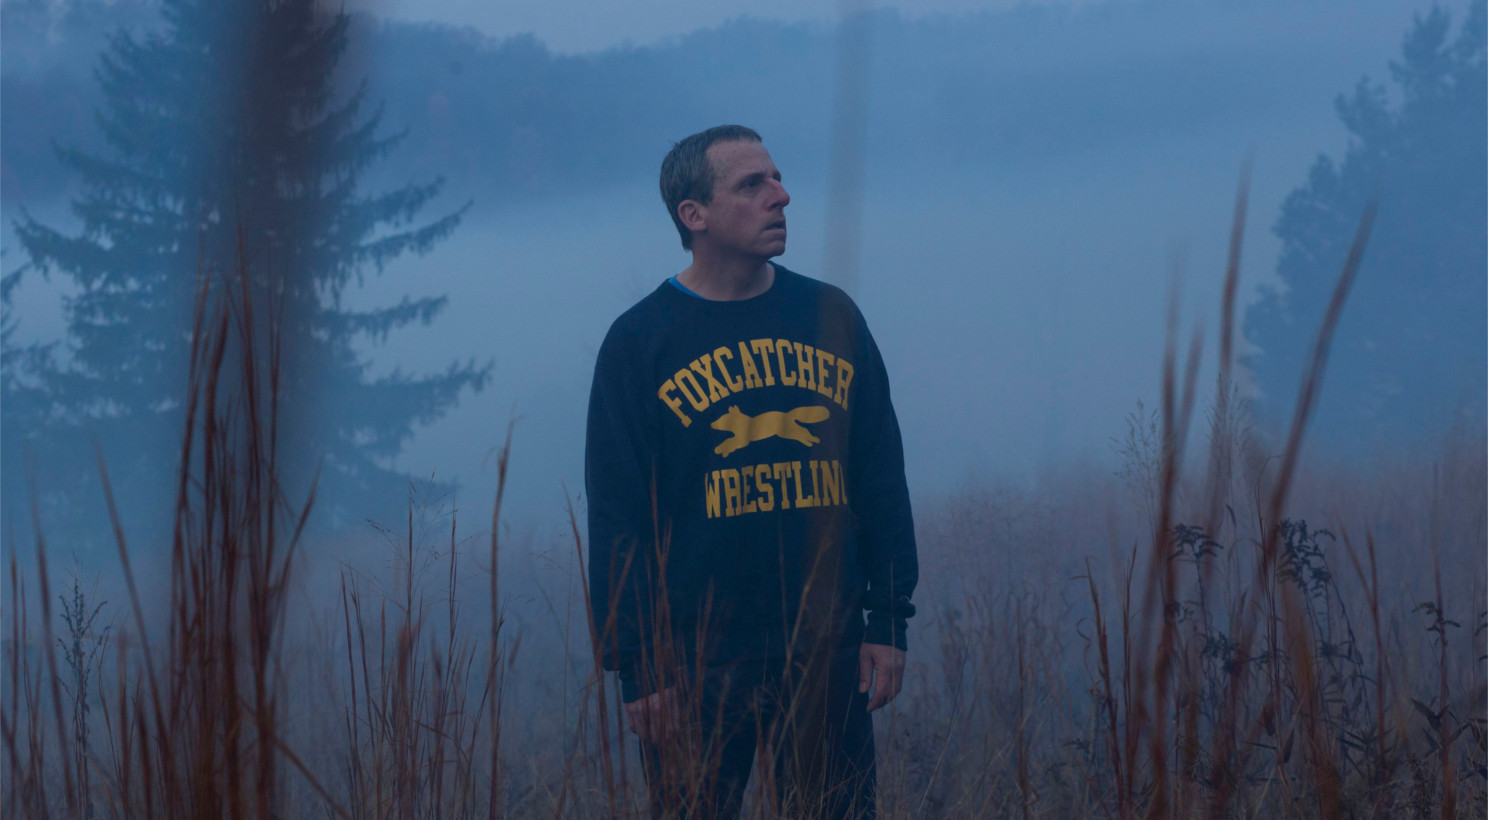 http://lounge.obviousmag.org/ally_collaco/2015/04/13/foxcatcher.jpg